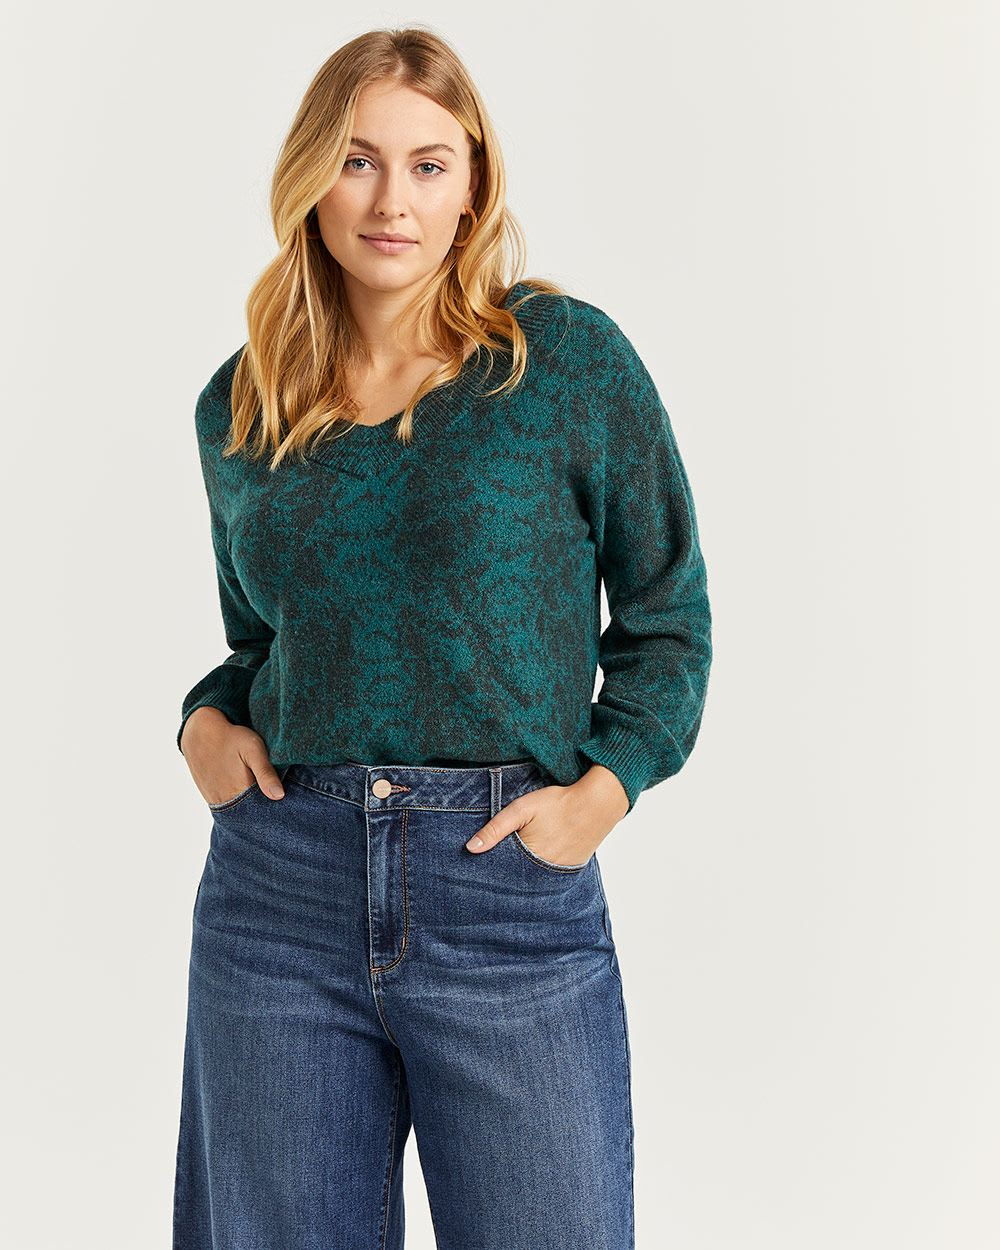 Snake Pattern V-Neck Sweater with Balloon Sleeves